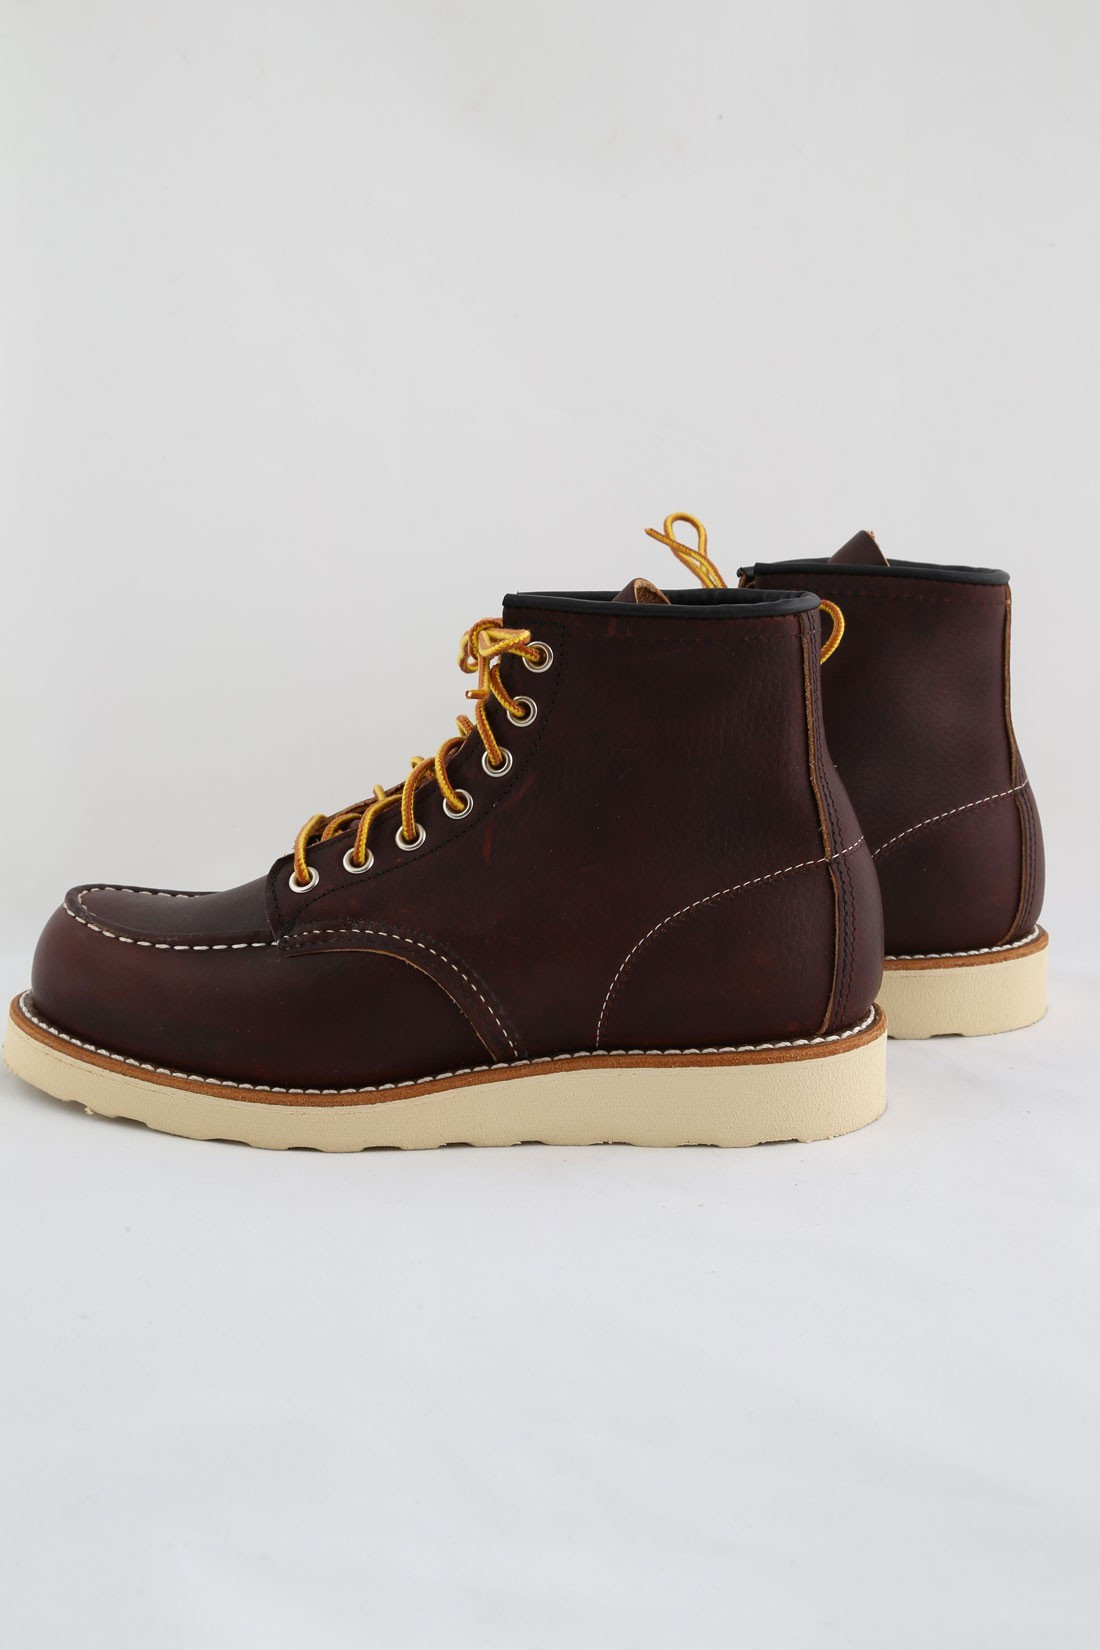 RED WING / Moc toe Style no.8138 briar